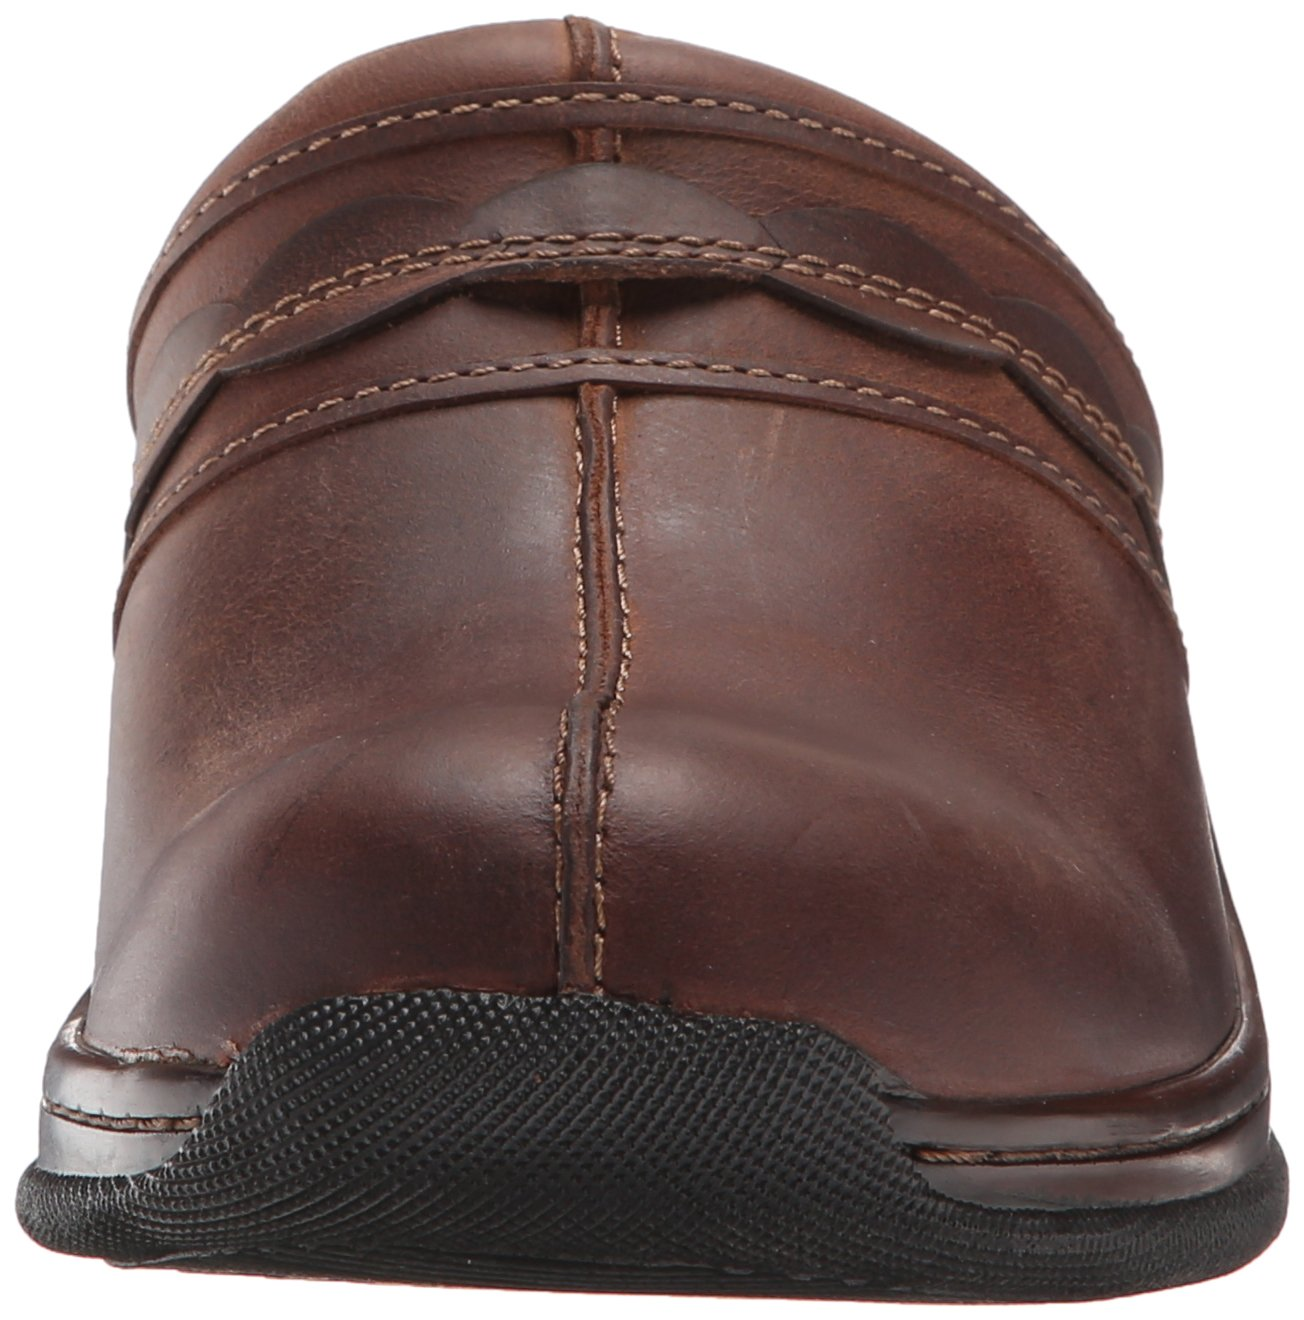 SoftWalk Women's Abby Clog B00RZZ0XAA 10 W US|Dark Brown Oil